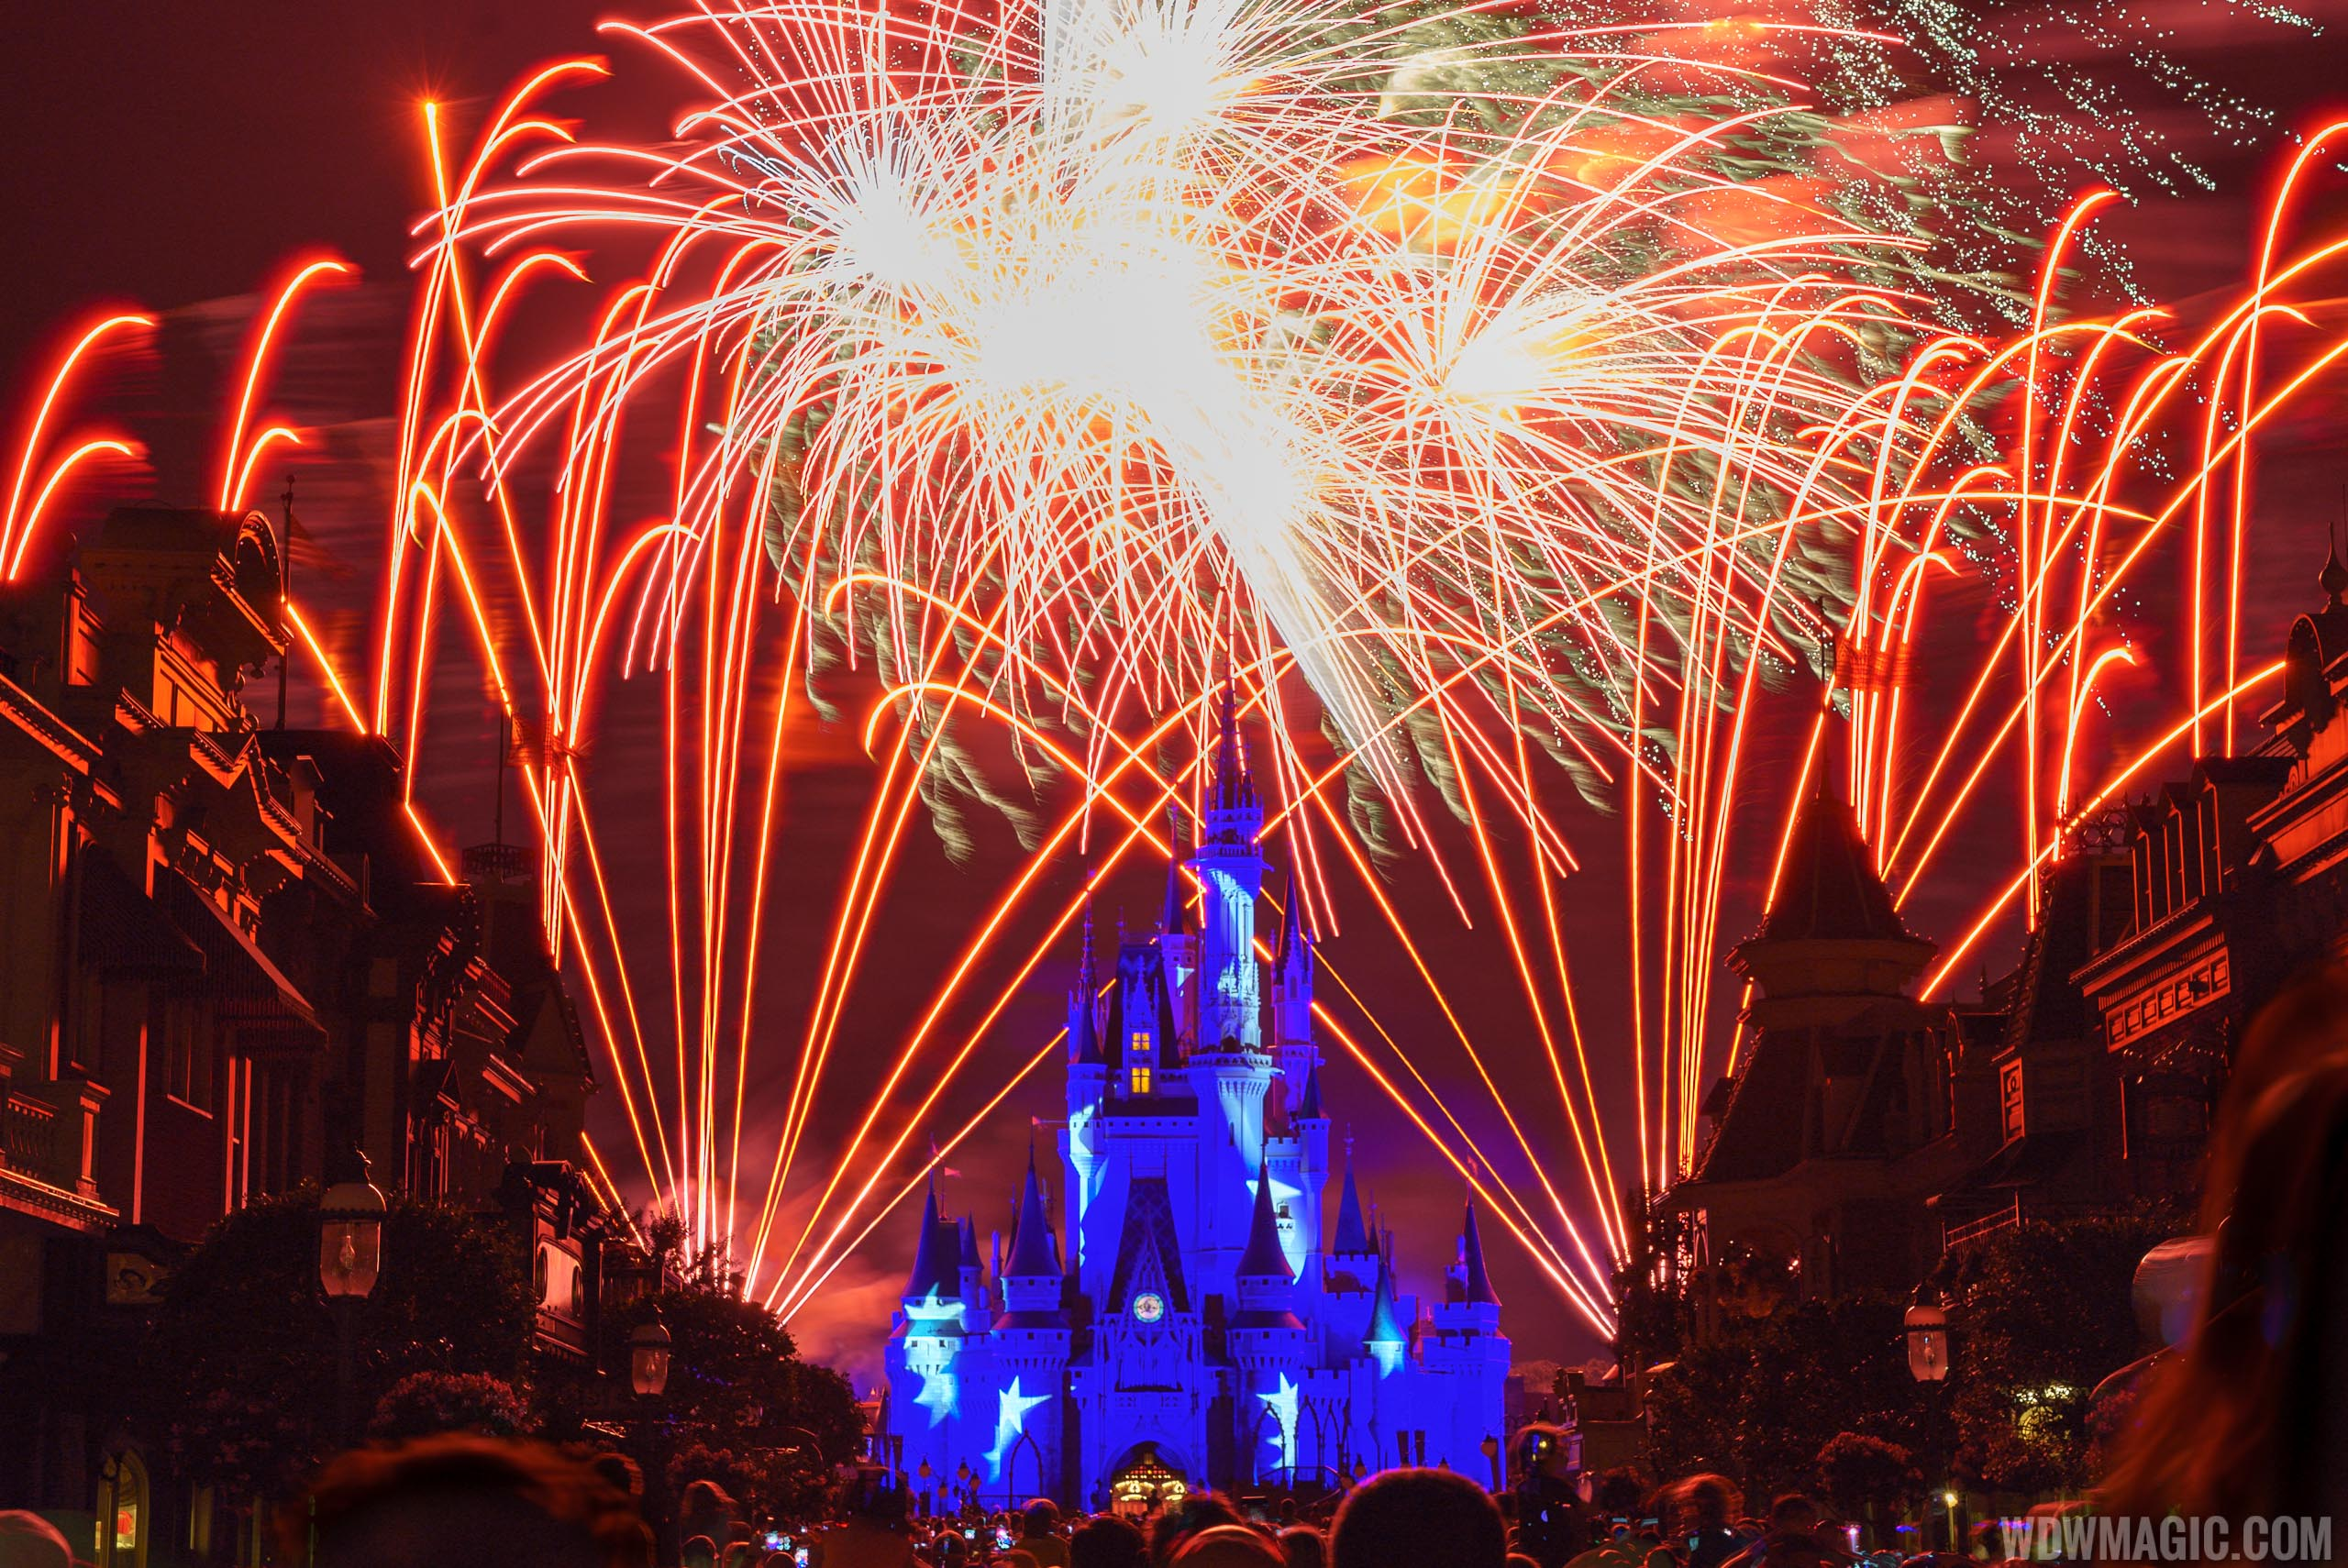 No firework shows are currently taking place at Walt Disney World